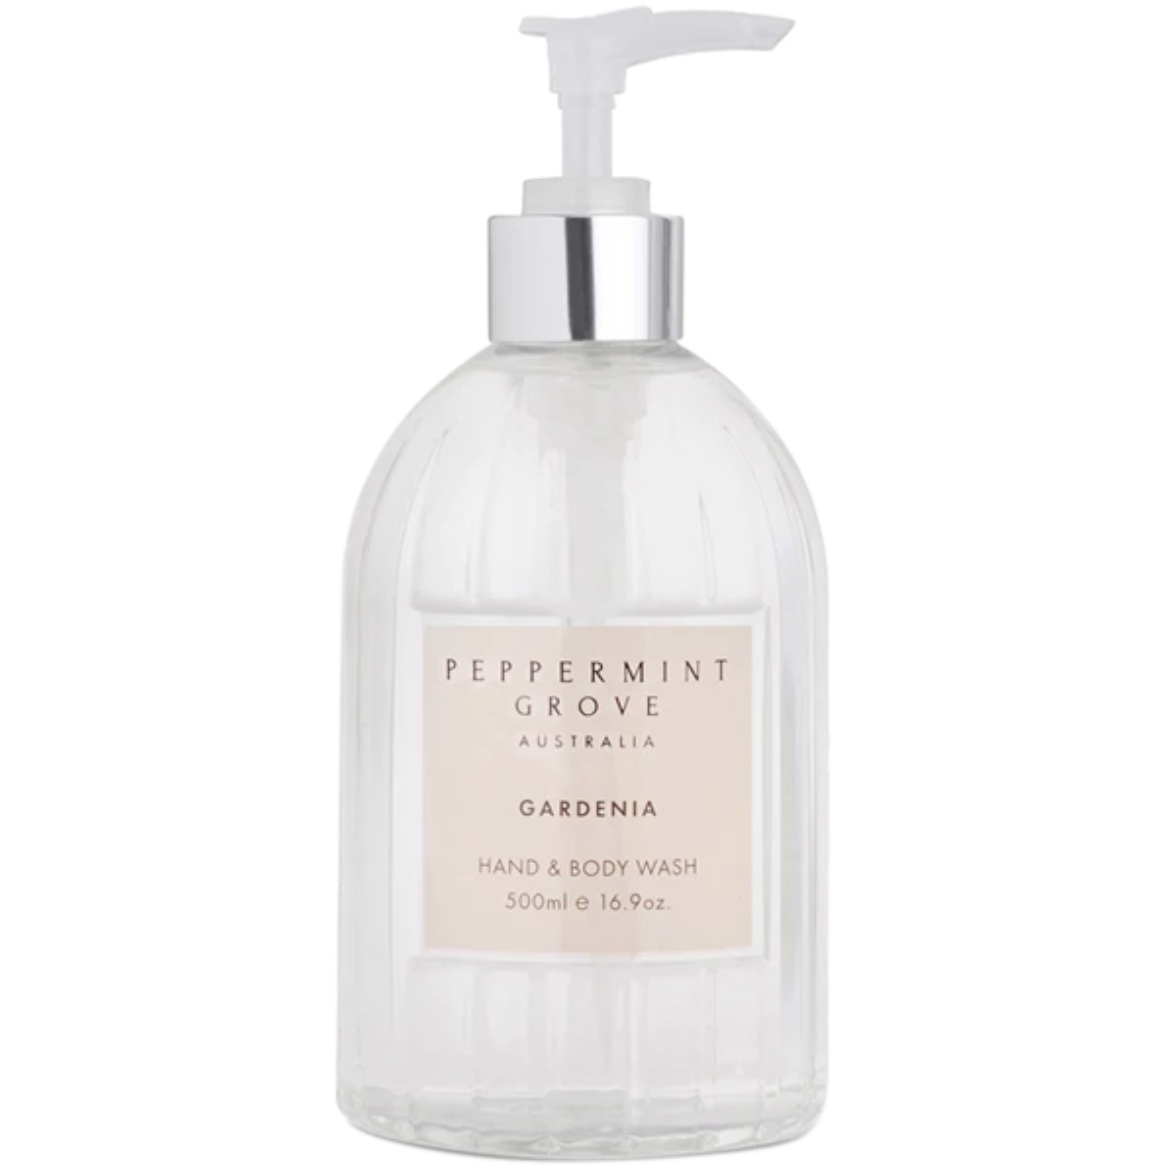 Peppermint Grove Gardenia Hand & Body wash